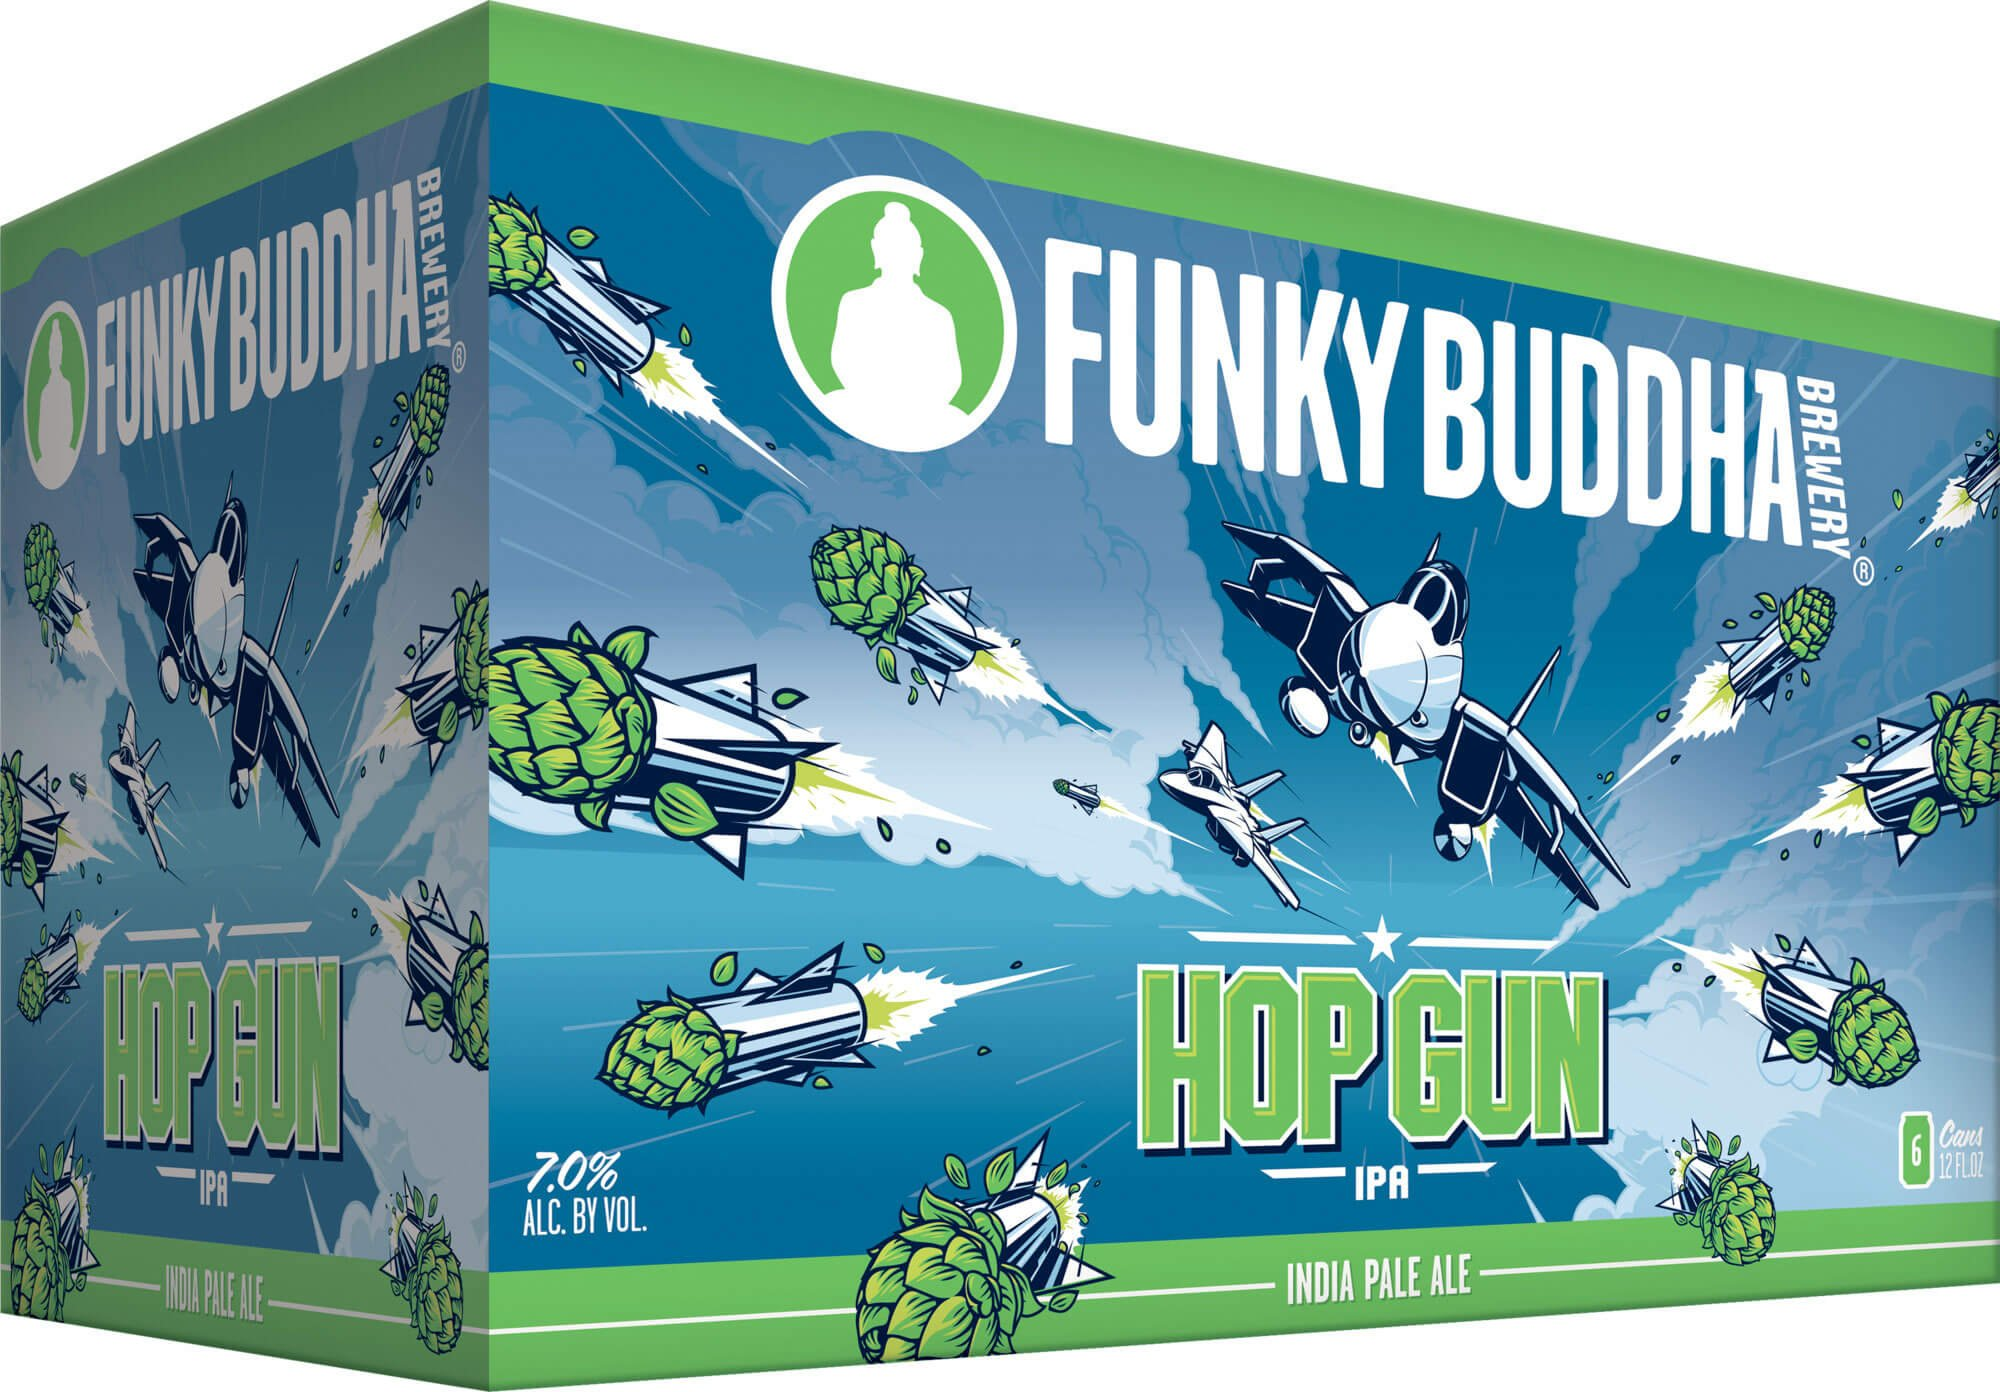 Packaging art for the Hop Gun IPA by Funky Buddha Brewery